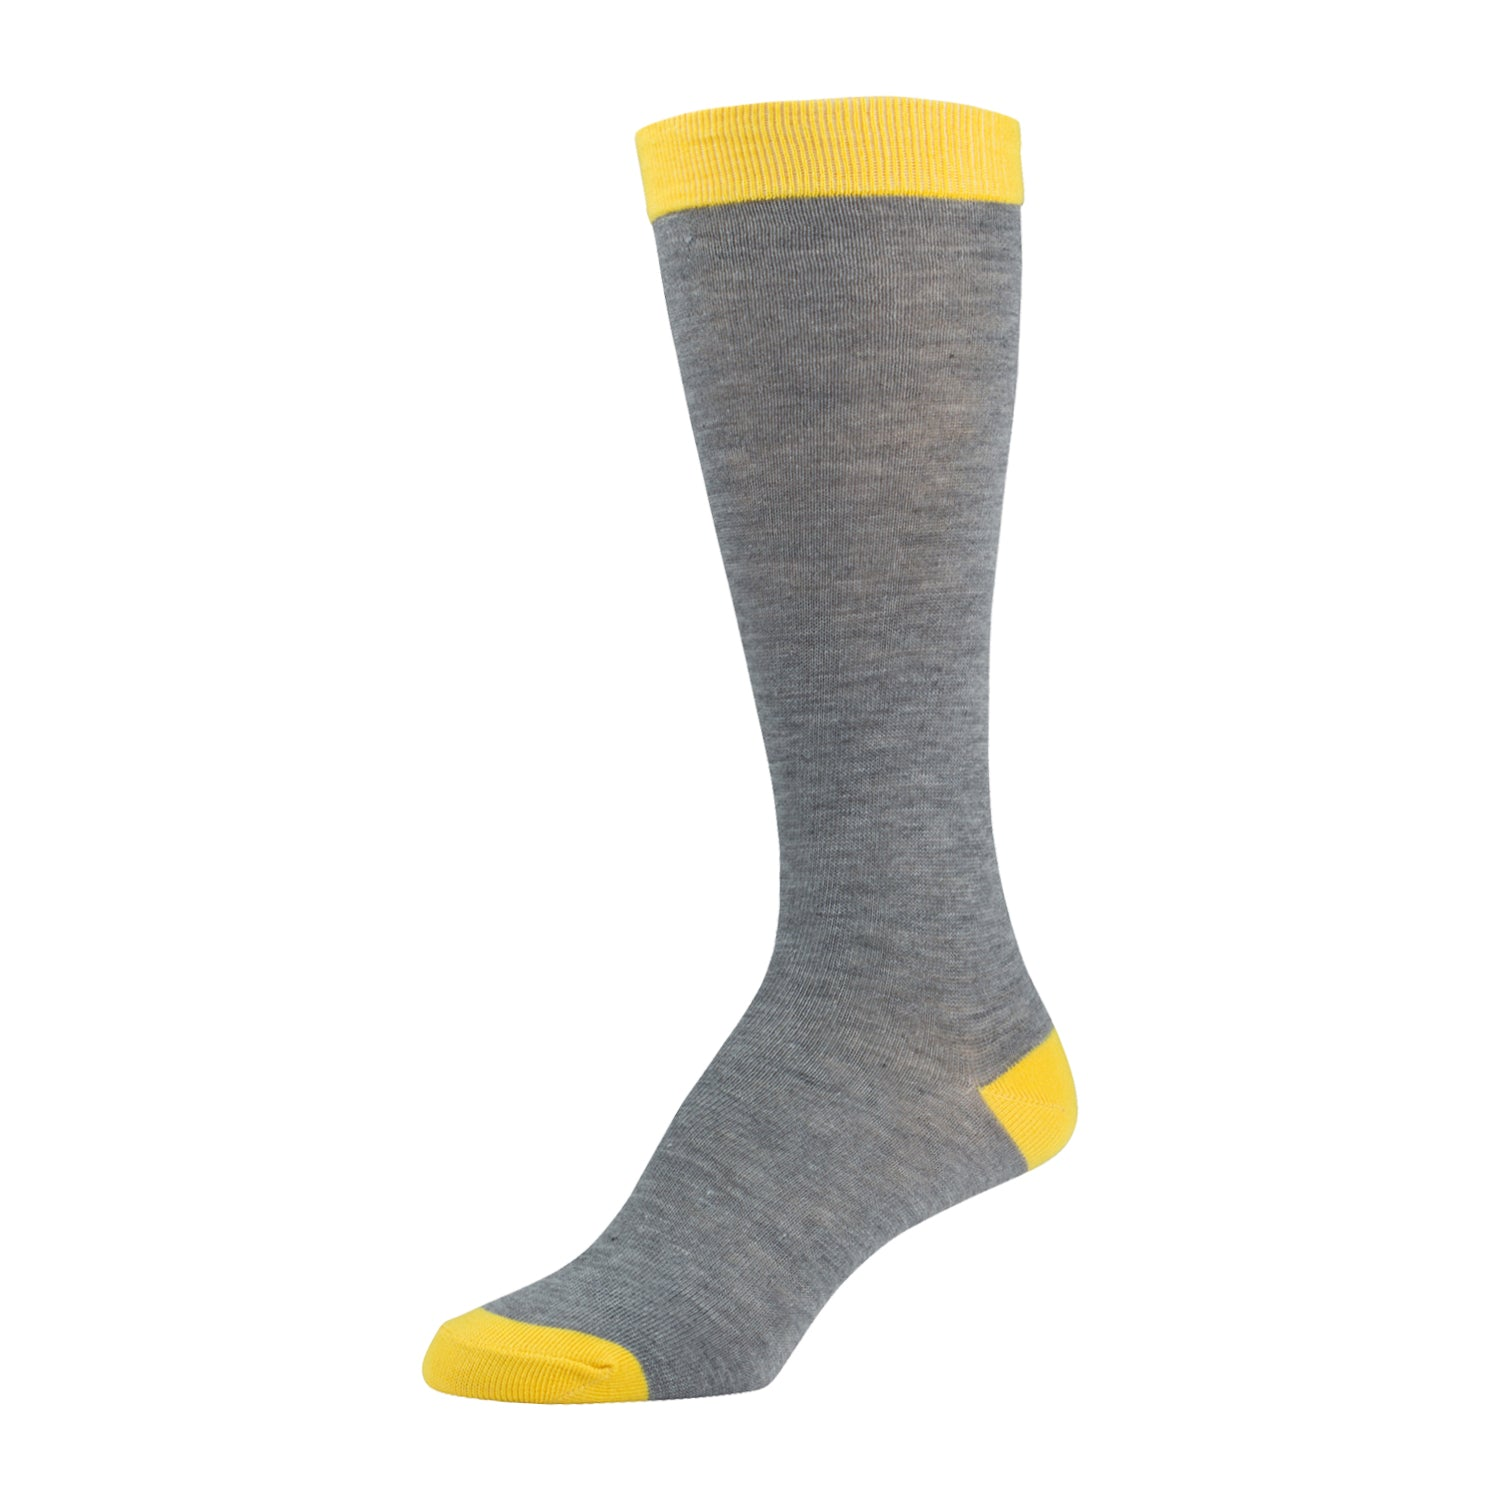 Heather Grey Knee High Sock With Yellow Toe Heel And Top